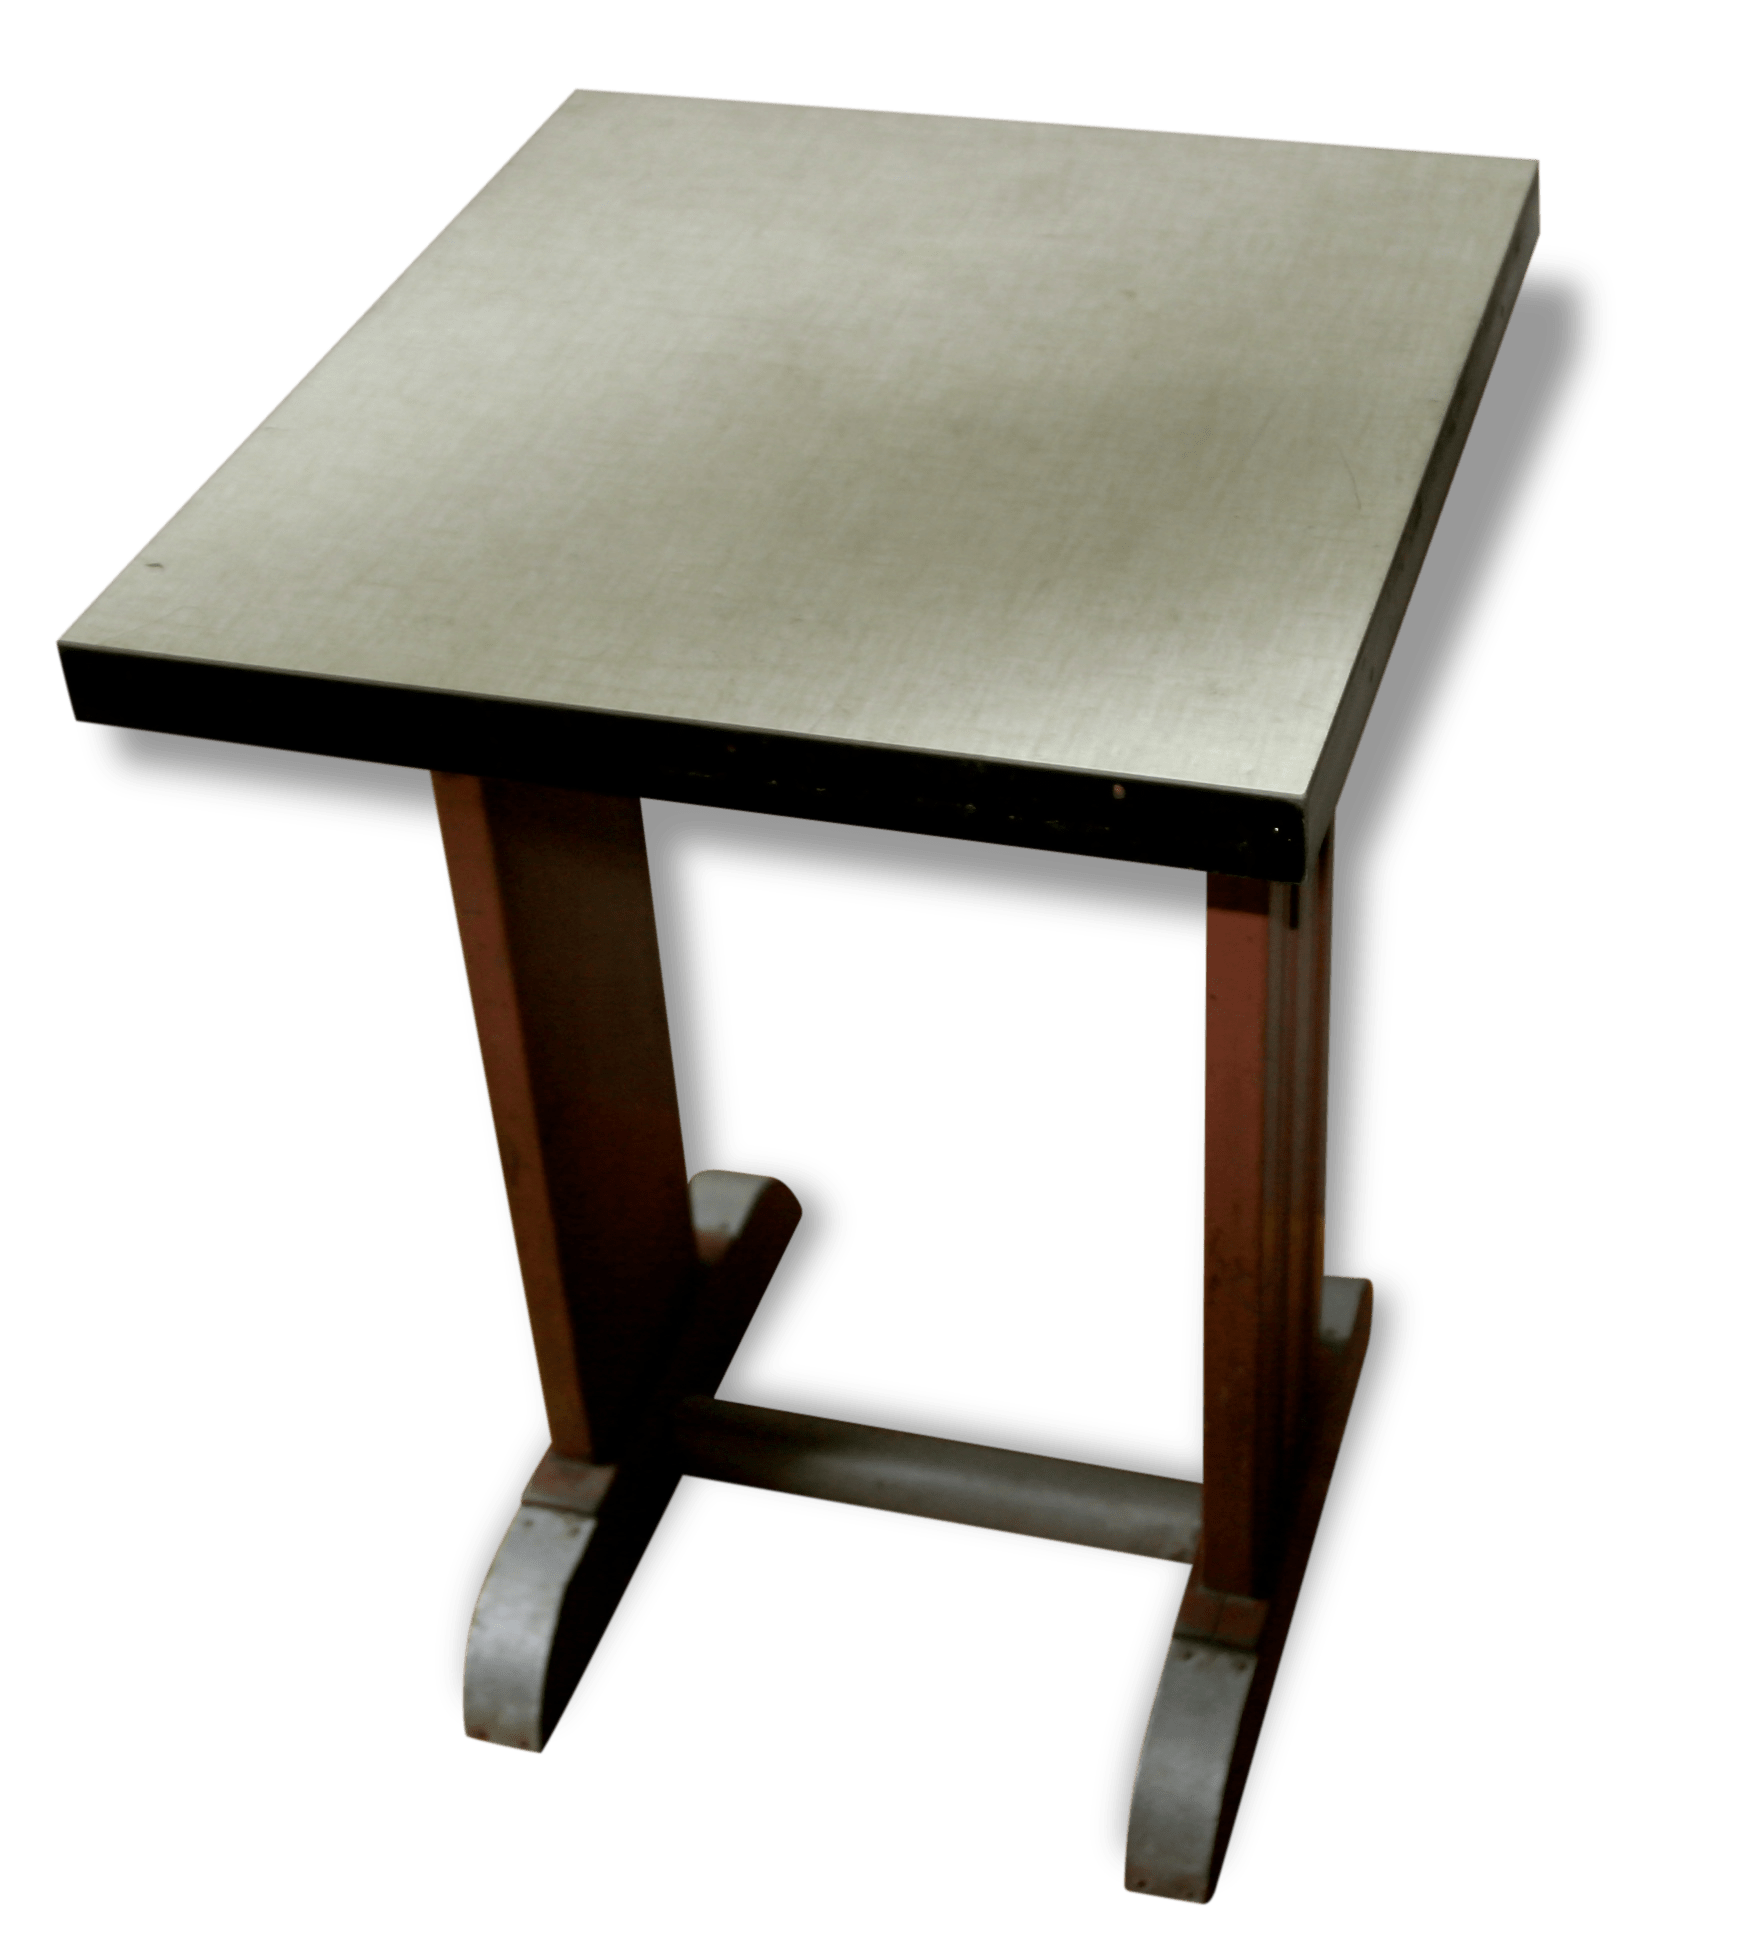 Table Bois Carré Table Bois Carre Latest Affordable Table De Jardin Carre